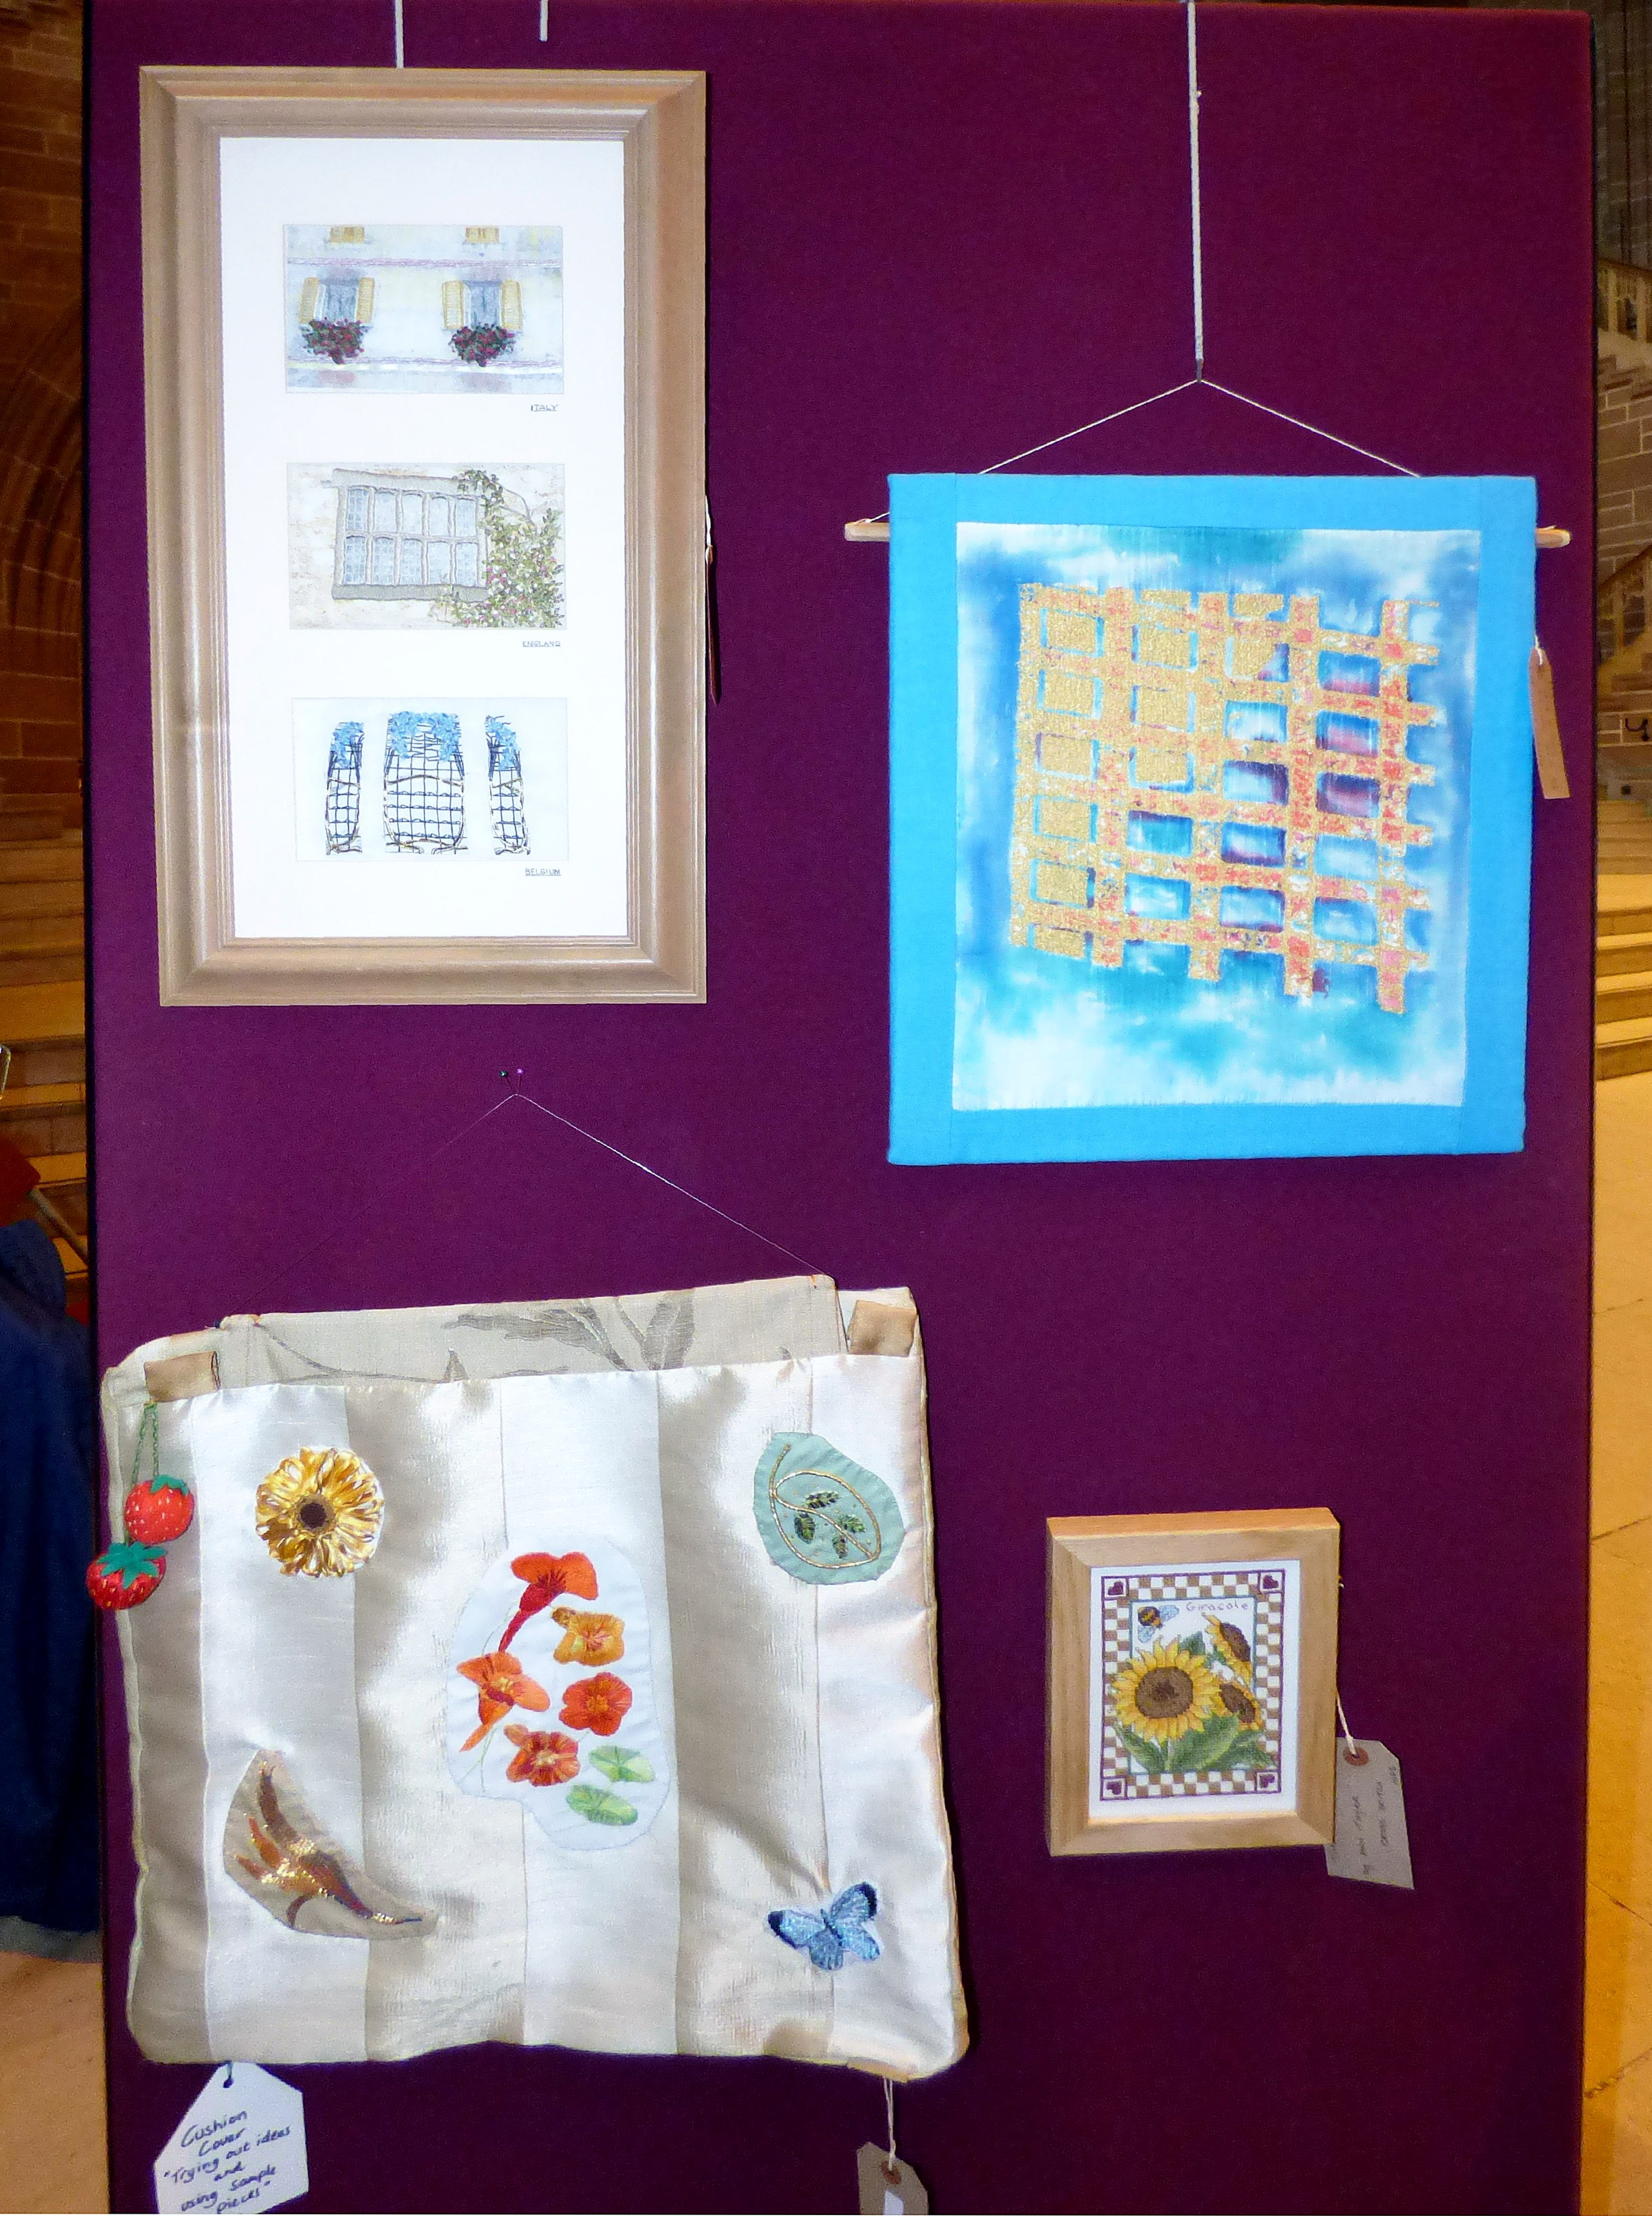 WINDOWS by Jean Mather, REFLECTIONS by Elsie Watkins, TRYING OUT IDEAS by Brenda Muller at 60 Glorious Years exhibition 2016